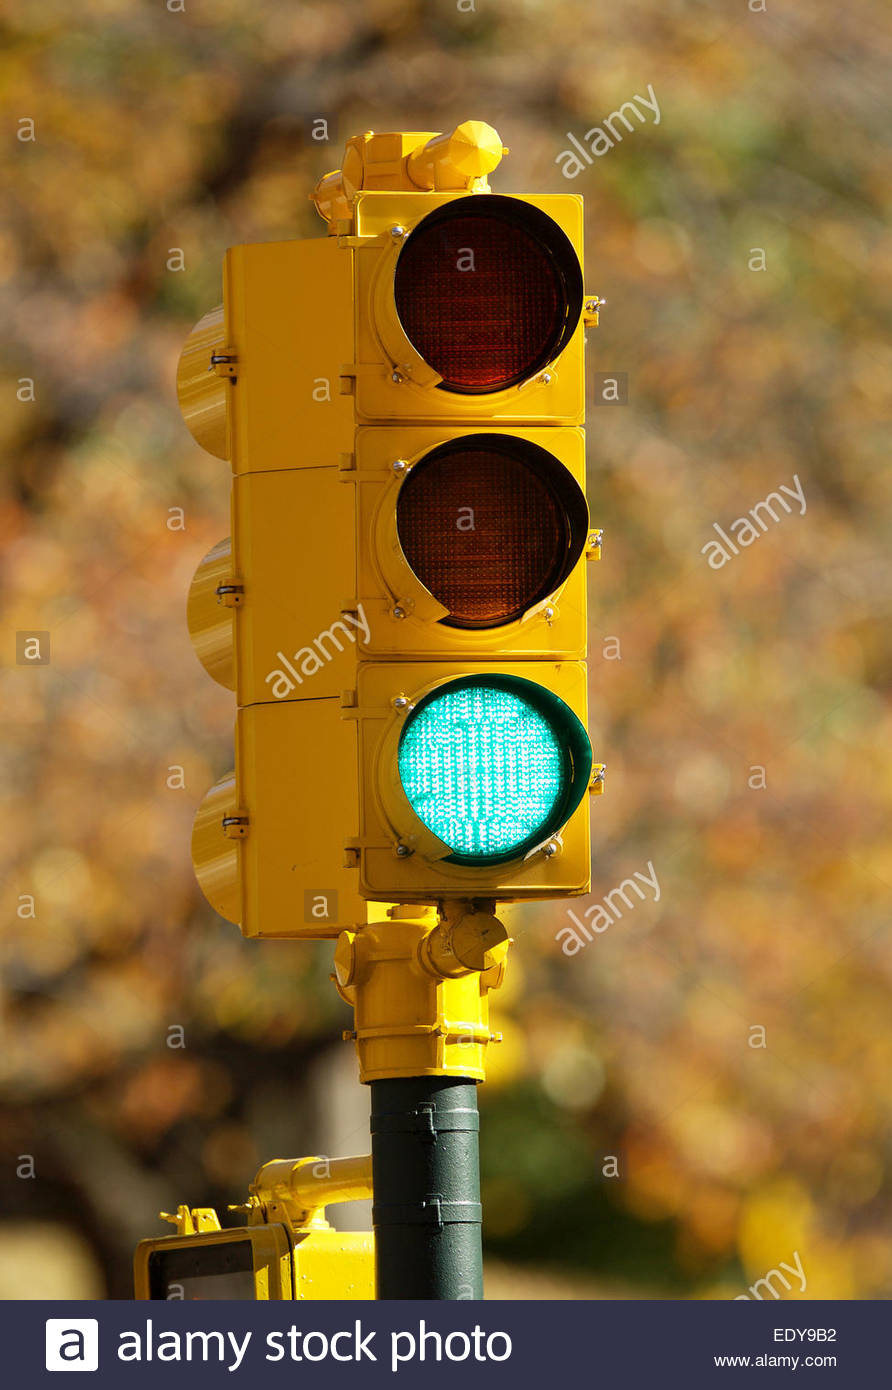 New Light Of Myanmar Daily Journal: A Yelllow New York Traffic Light In Central Park, New York